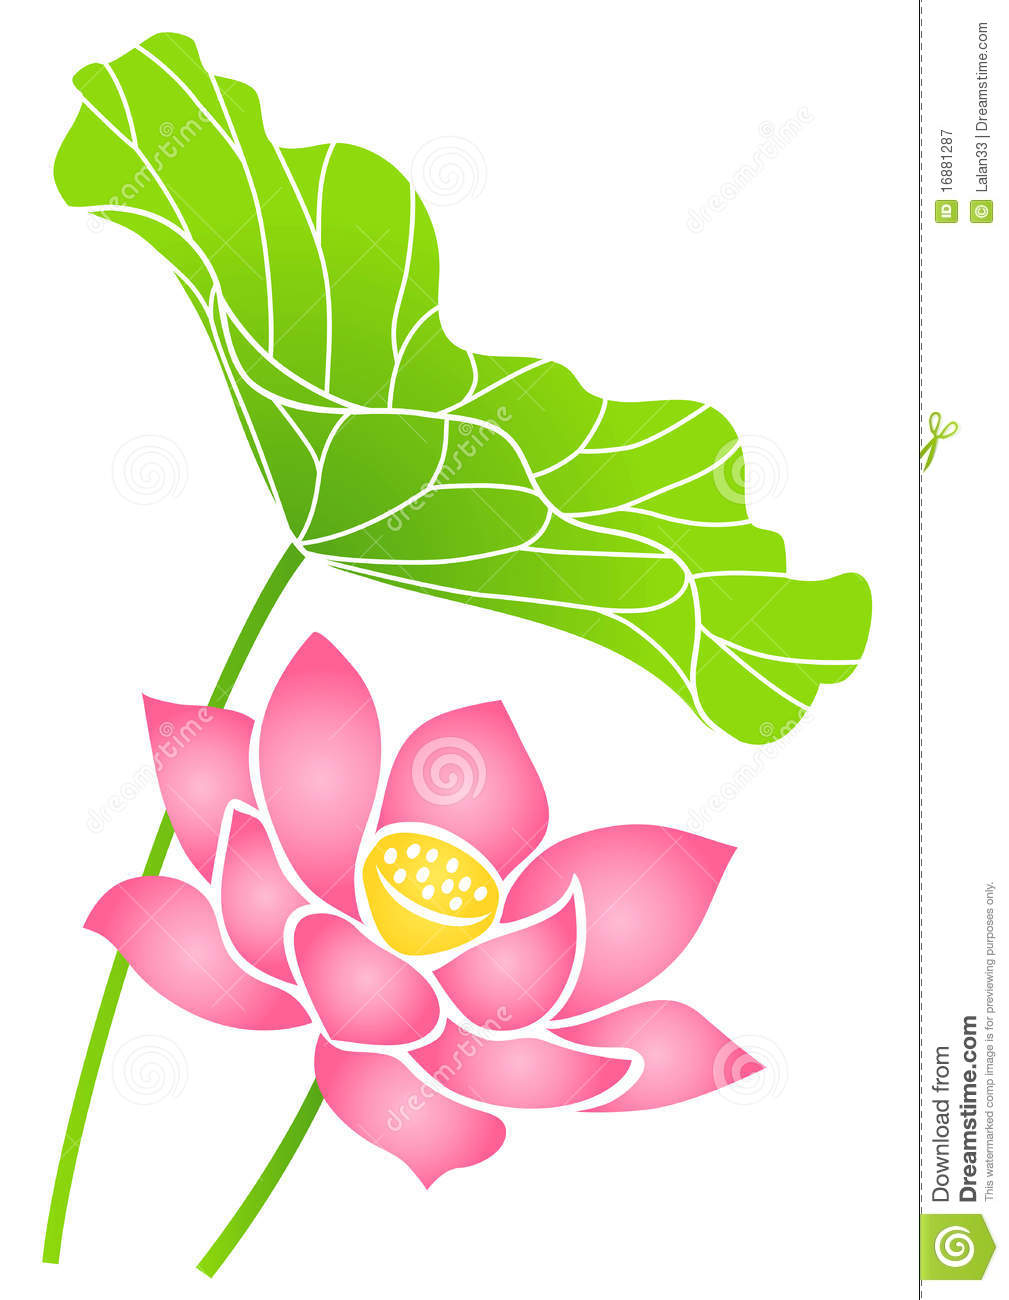 Lotus Flower Design Wall Paper : Lotus flower royalty free stock photography image